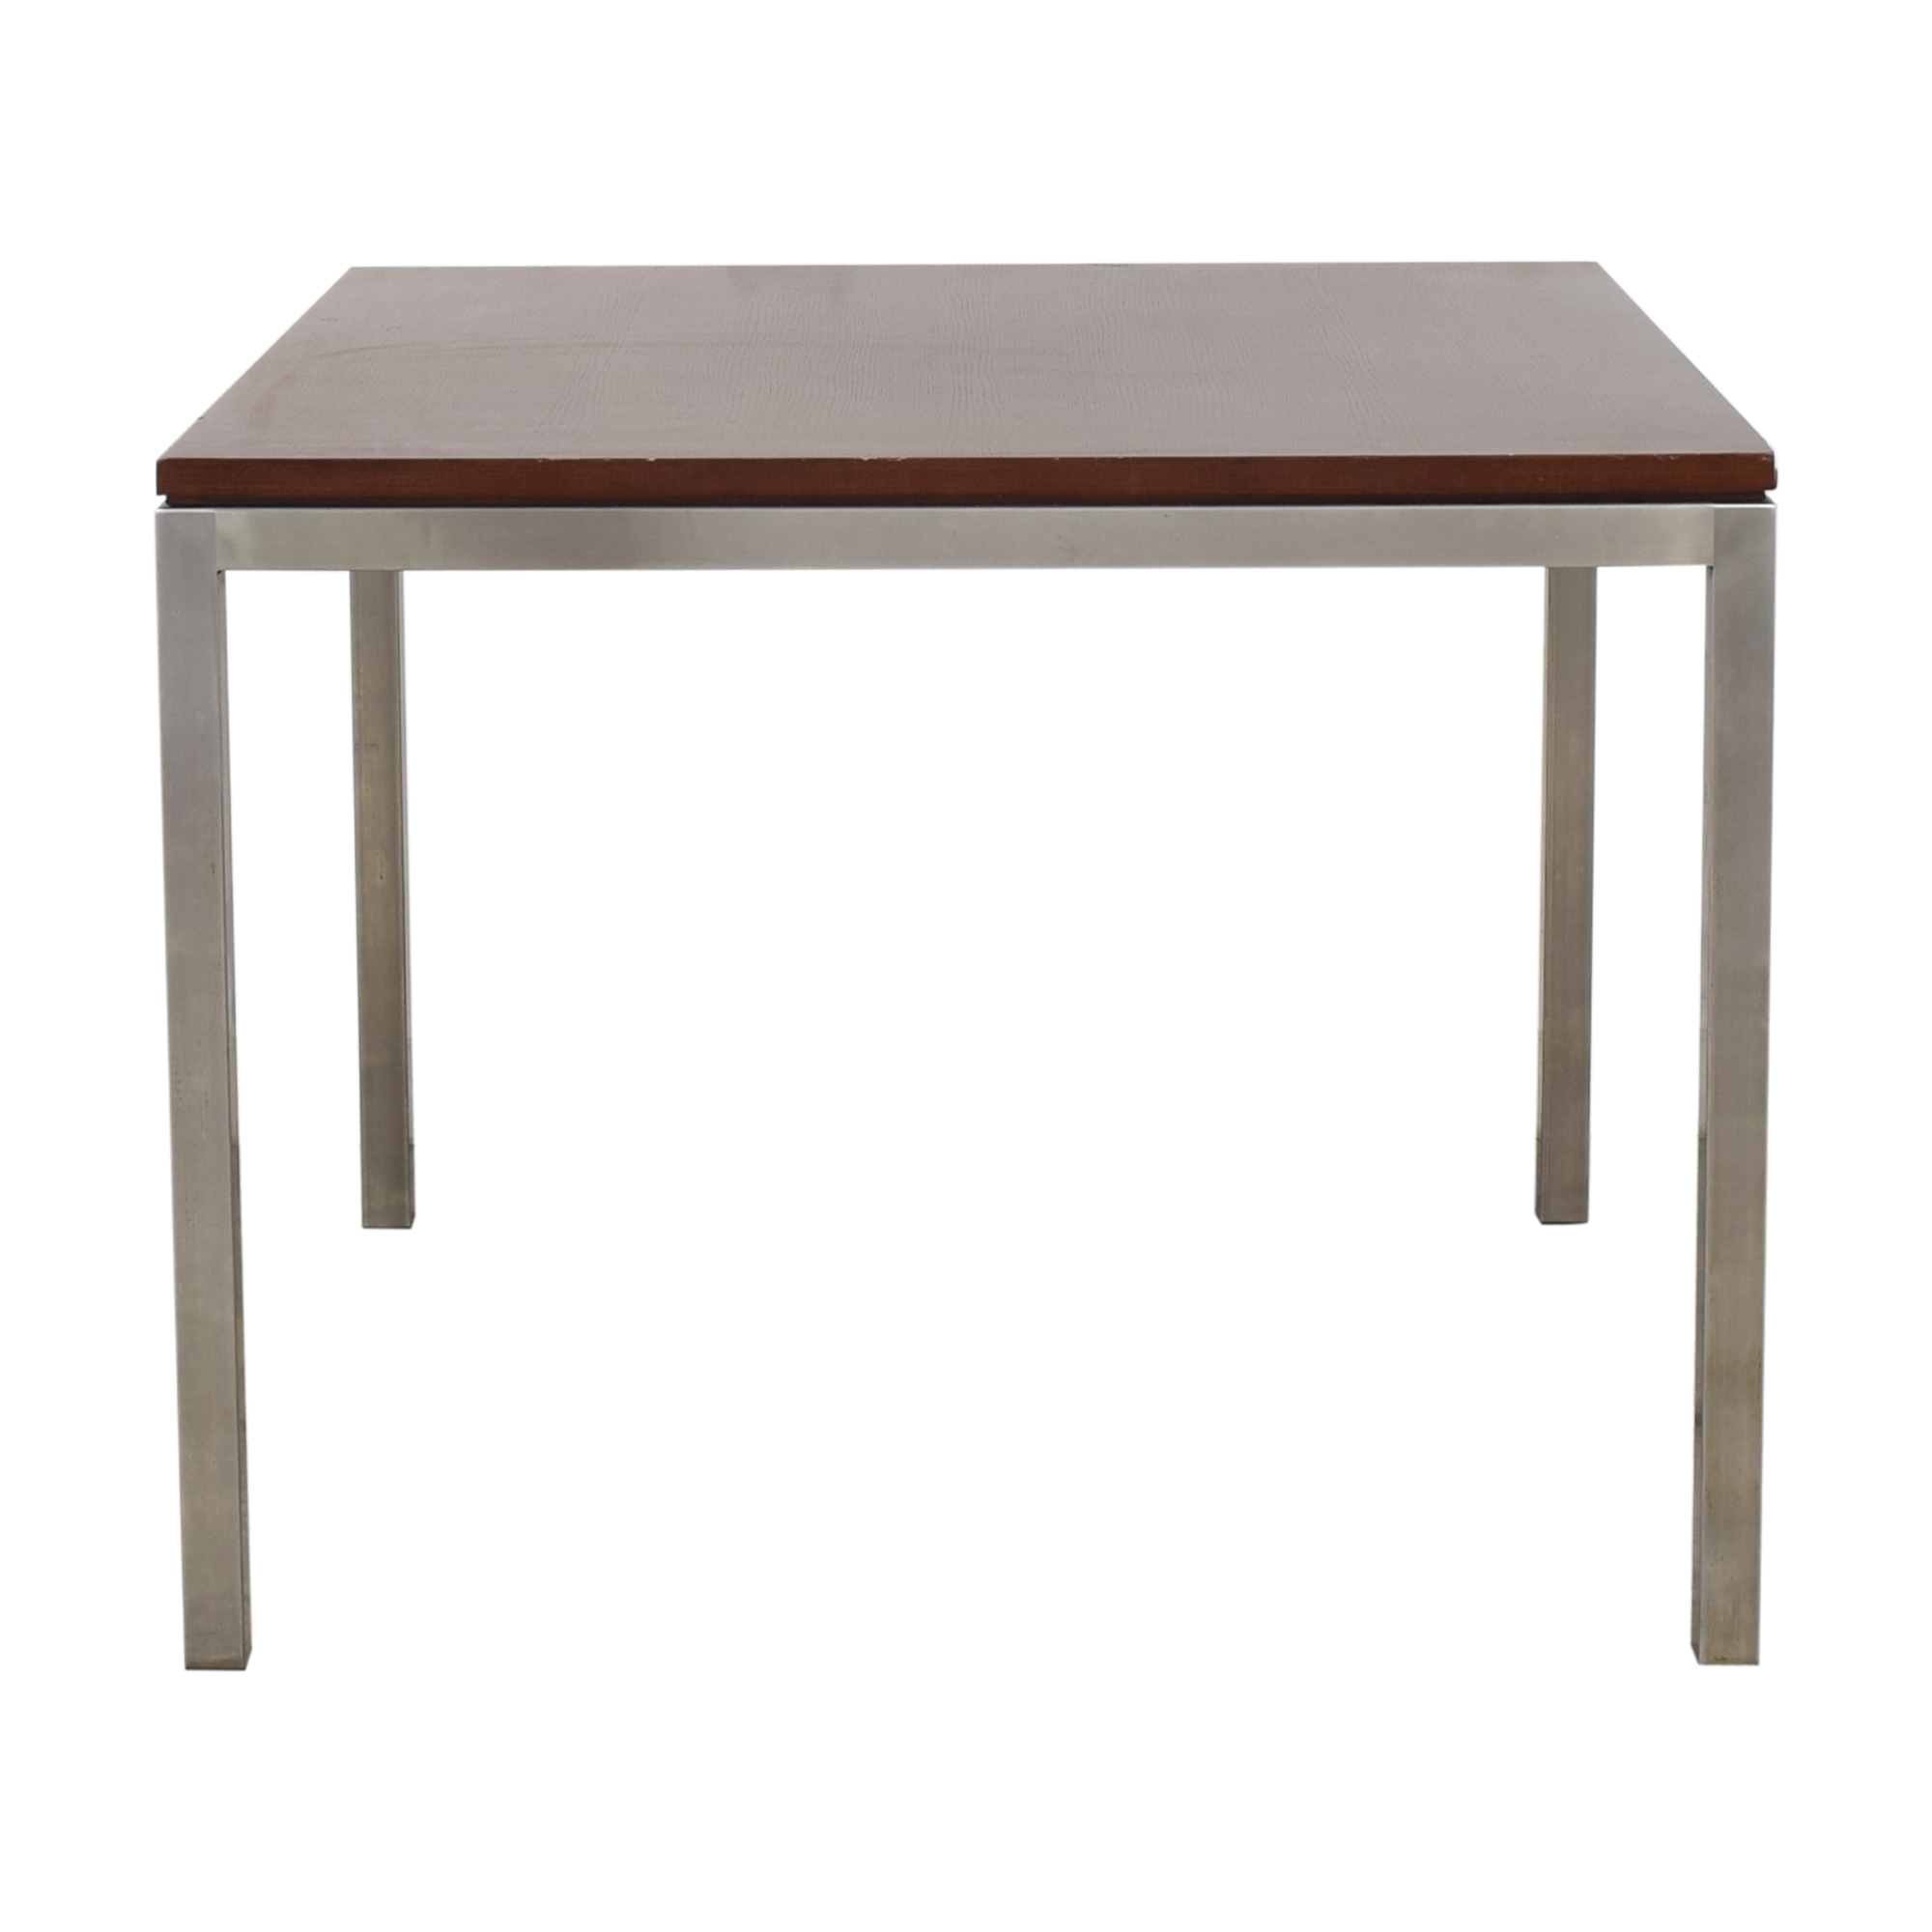 buy Ethan Allen Wood and Chrome Dining Table Ethan Allen Dinner Tables